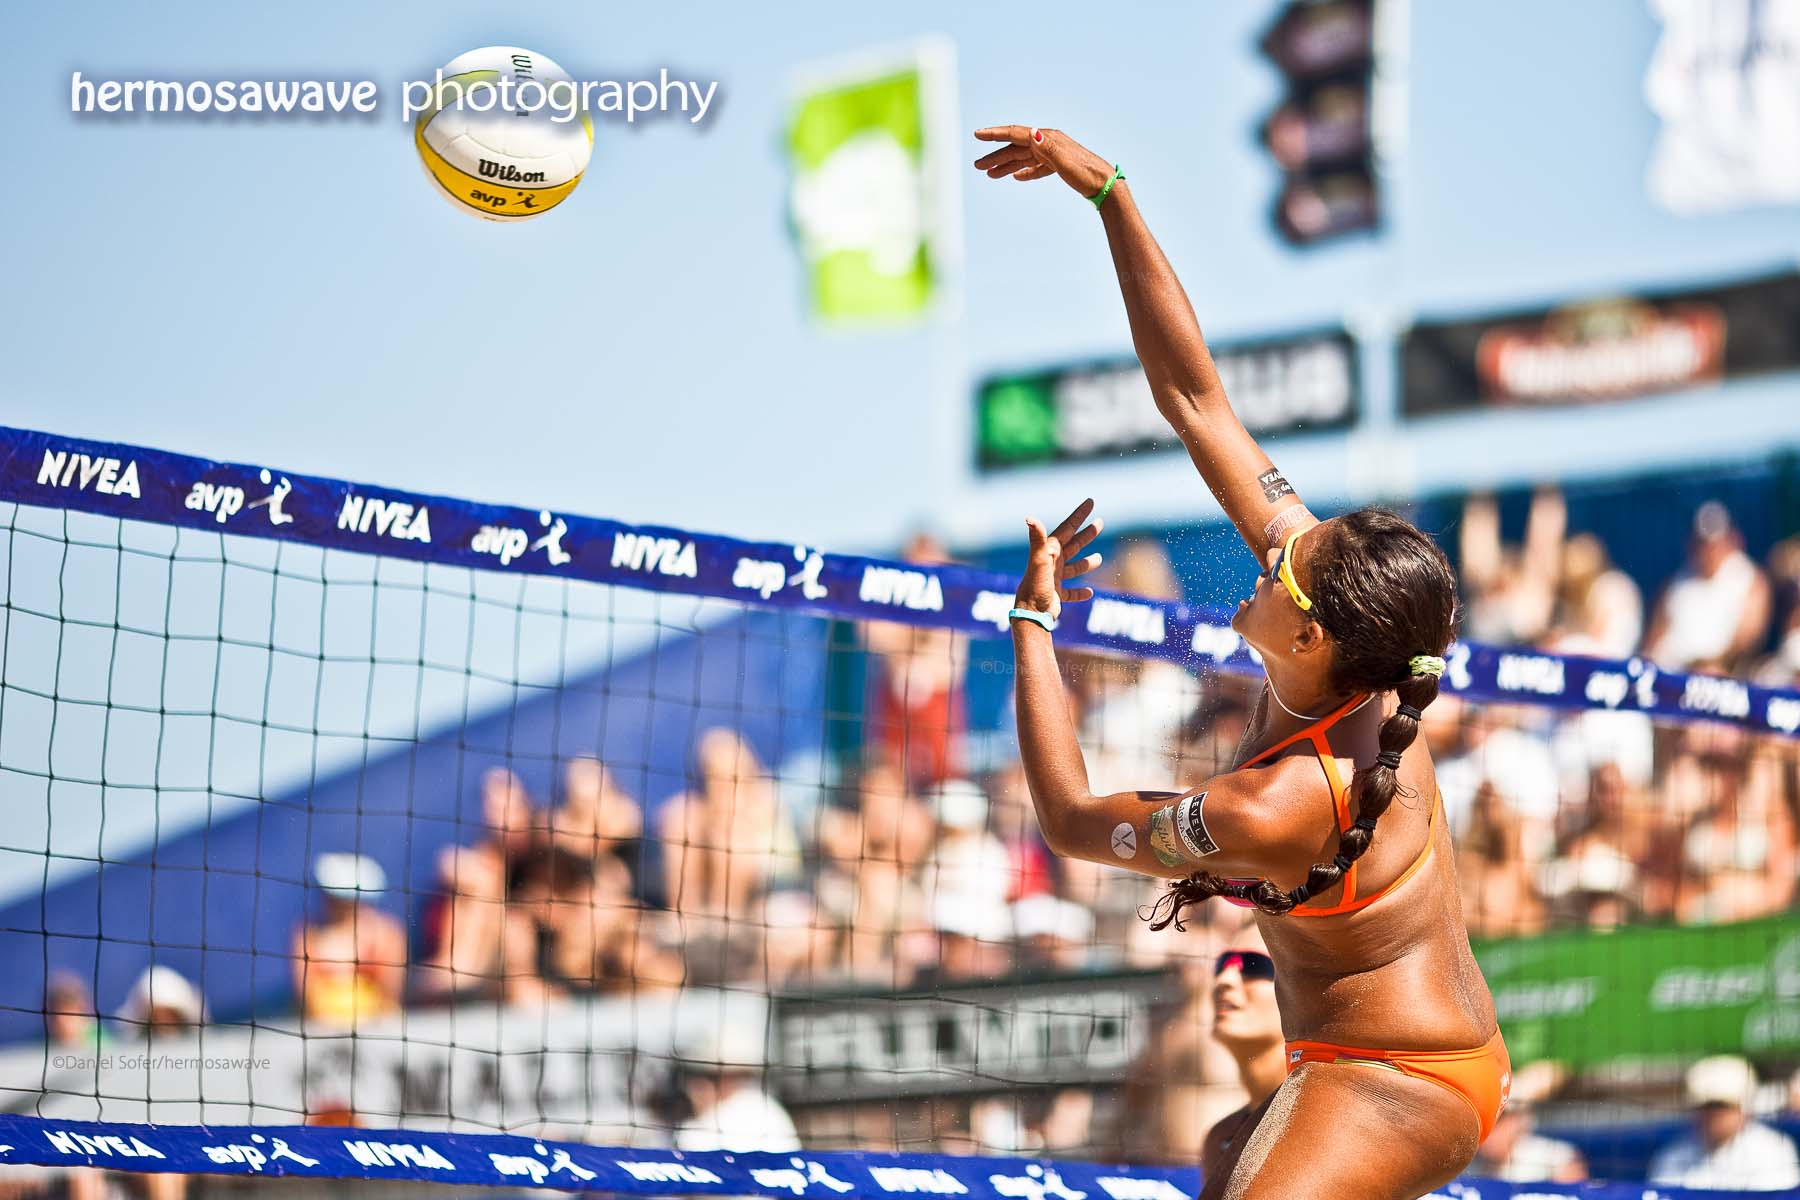 AVP Hermosa Beach Open